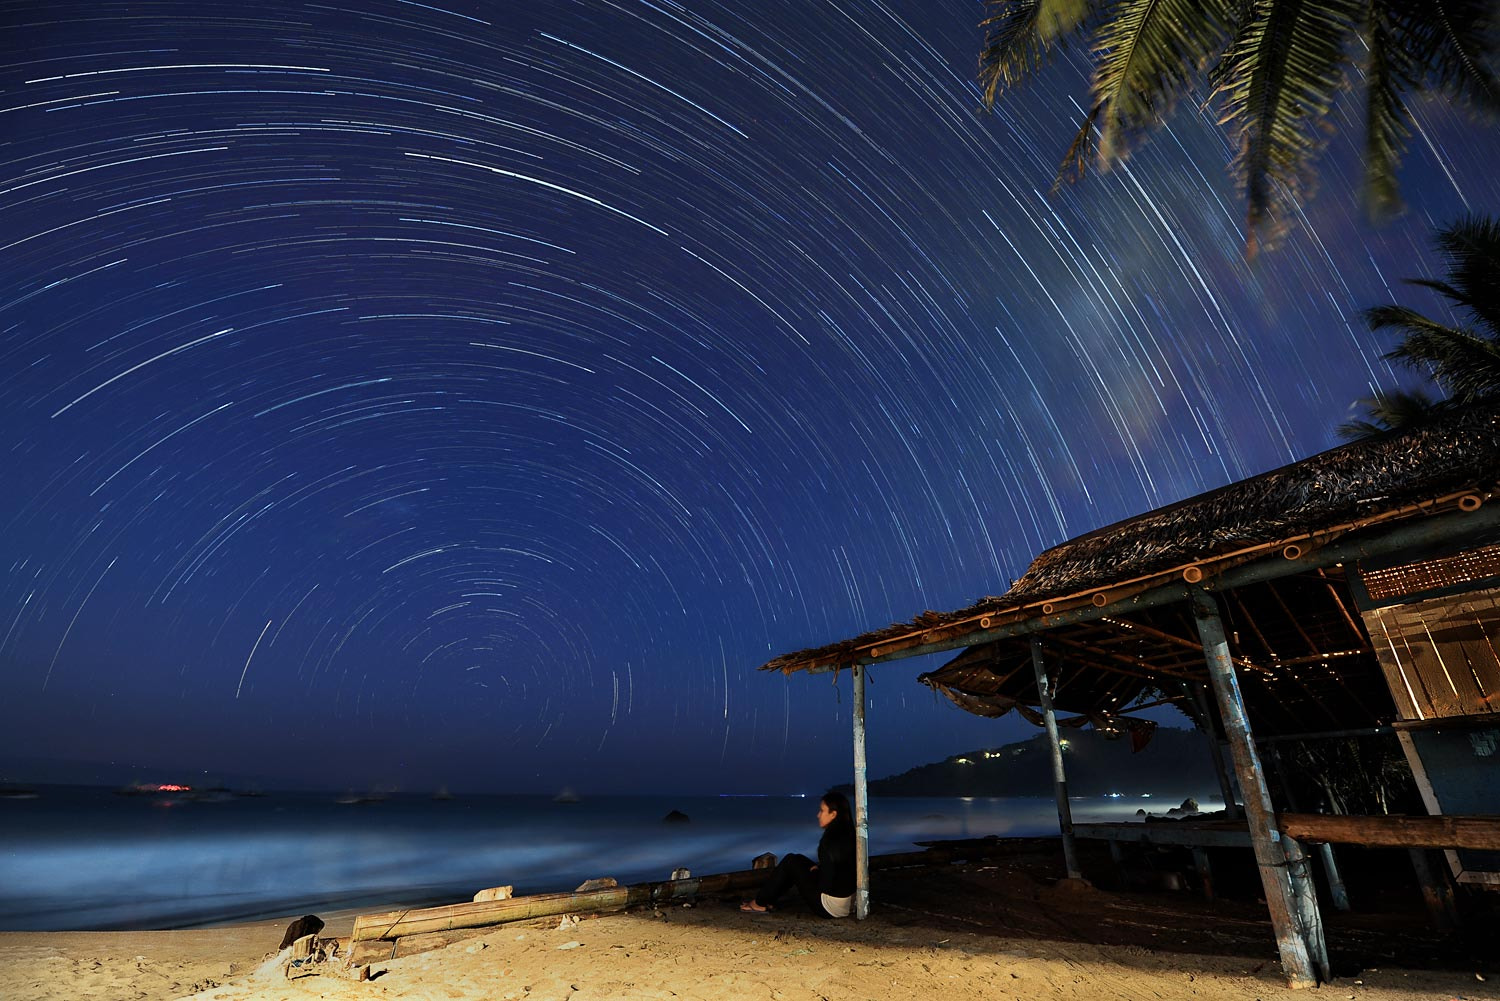 Photograph Stary Night by Mieke Suharini on 500px